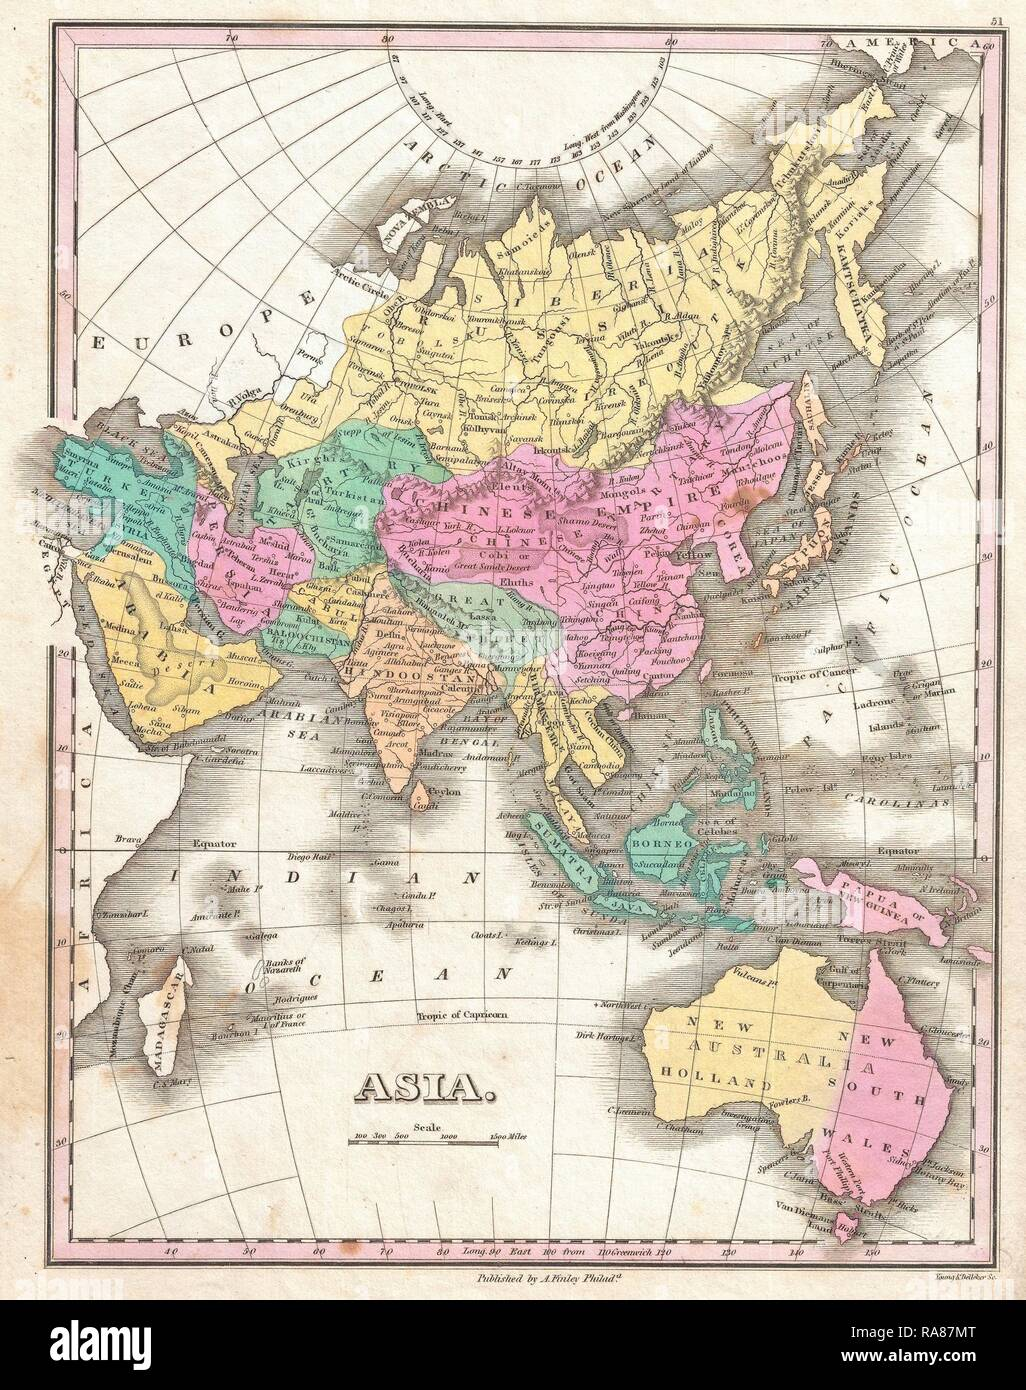 19th Century Map Asia Stock Photos & 19th Century Map Asia ... on europe map, iran map, voyage map, afrique map, portugal map, bangladesh map, nature map, africa map, religion map,